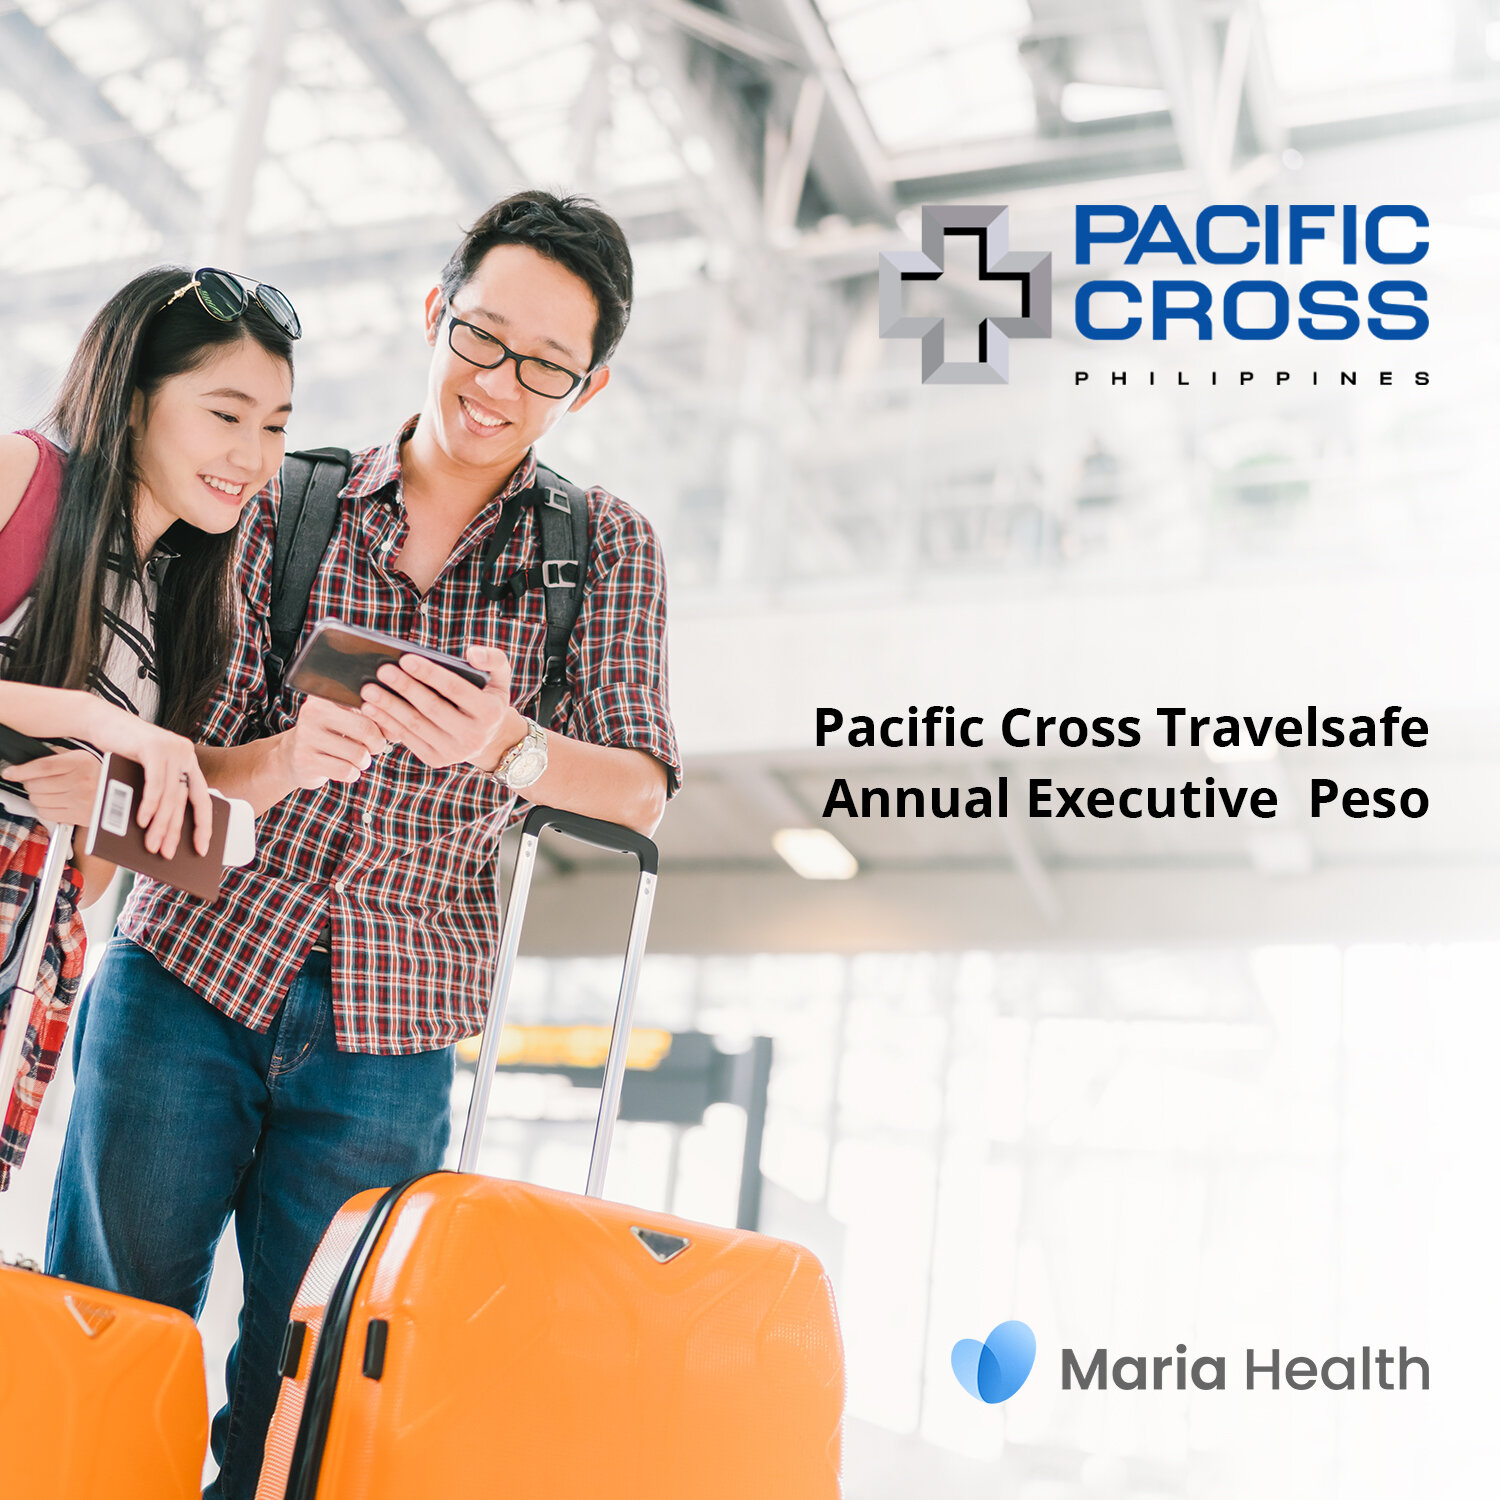 Pacific Cross Travelsafe Annual Executive Peso    ₱5,149 one-time payment   The Travelsafe Annual Executive Peso is an annual plan that covers medical treatment up to ₱500,000 per trip.